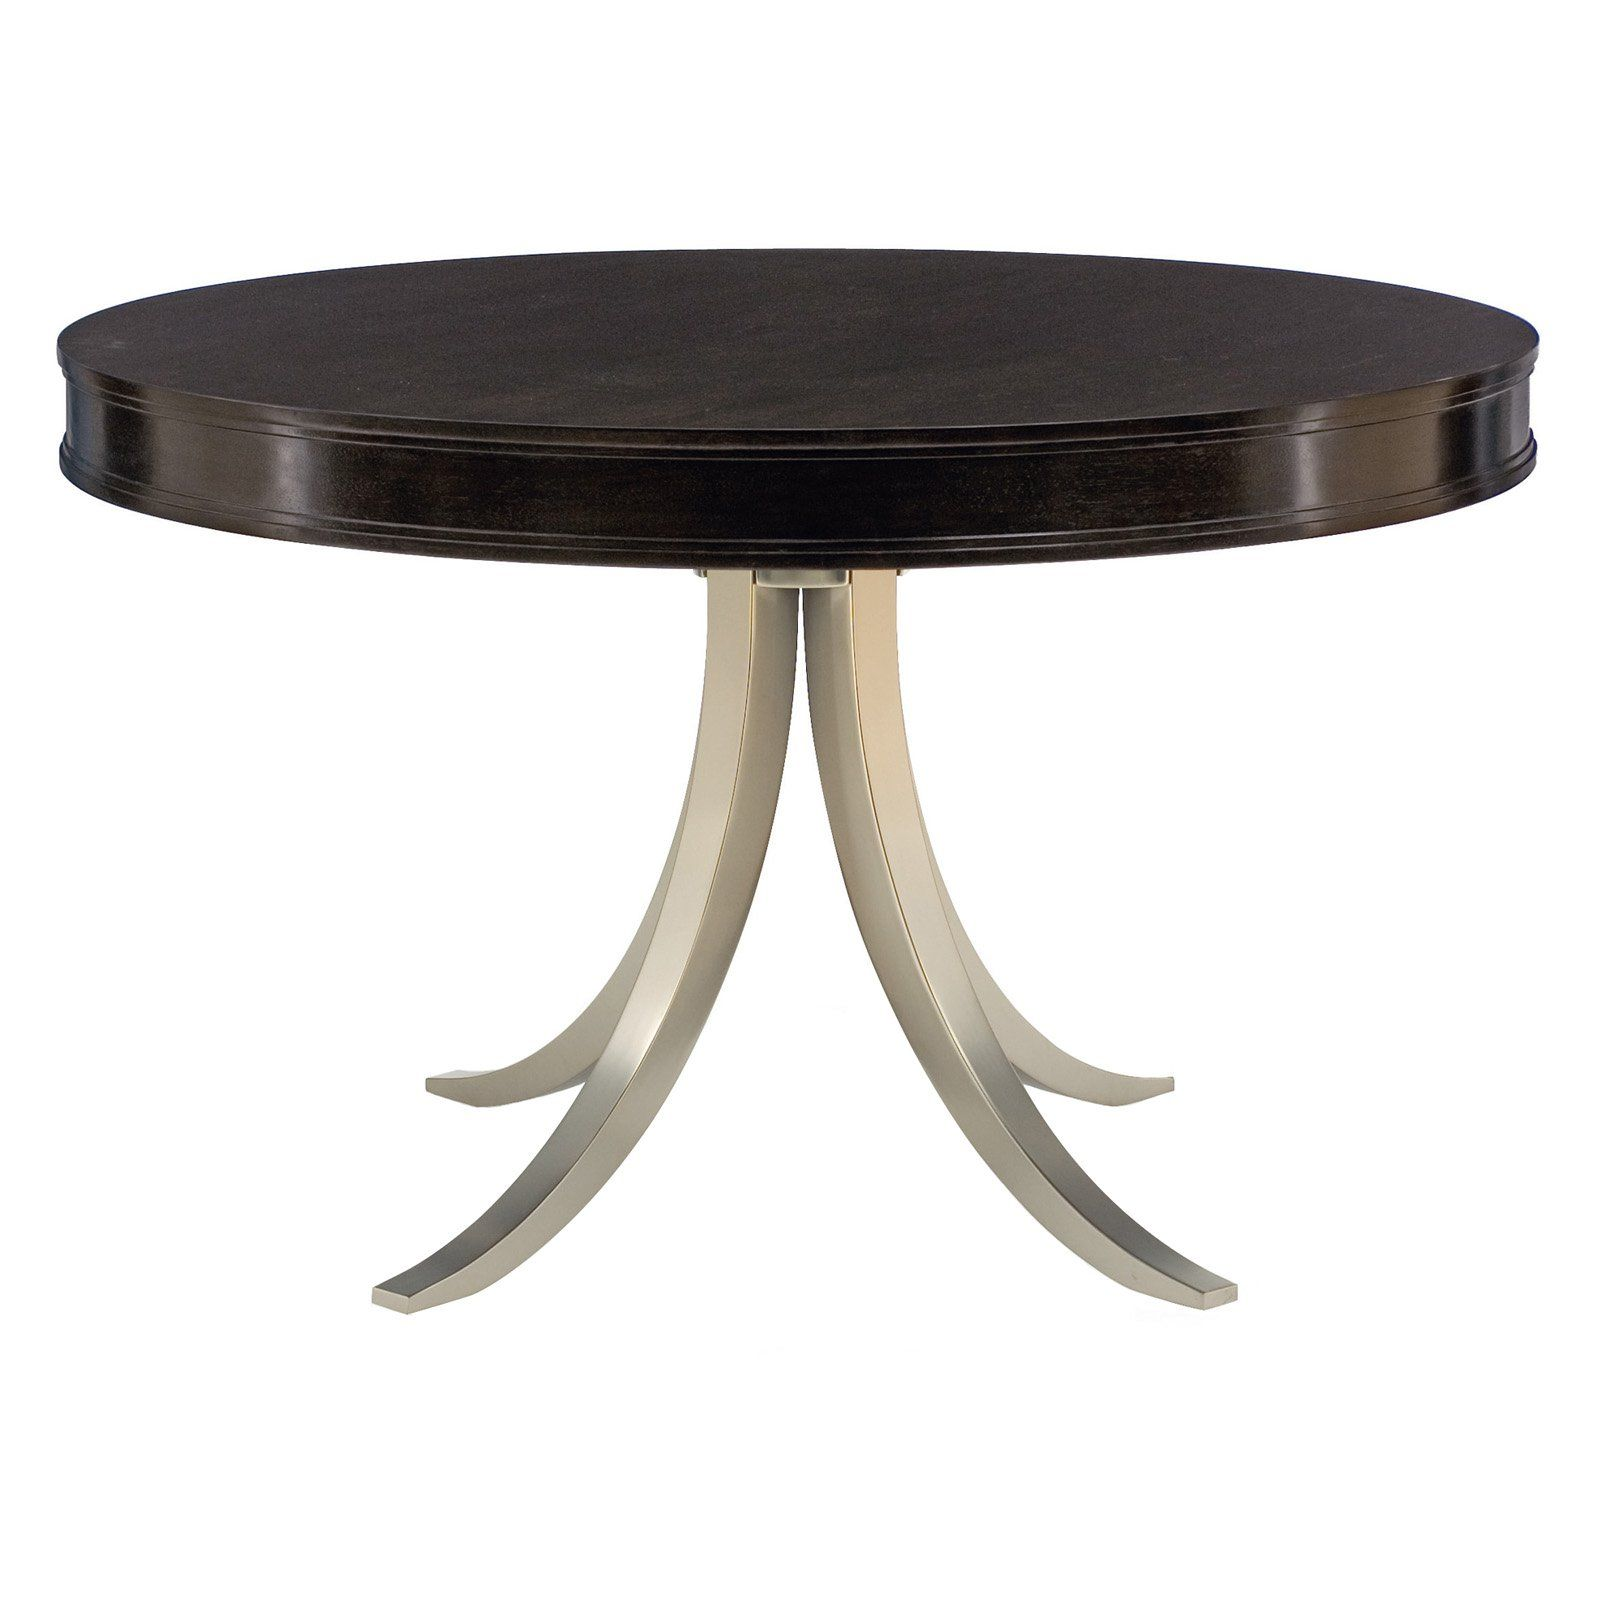 Bernhardt Haven Round Dining Table Furniture Dining Table Metal